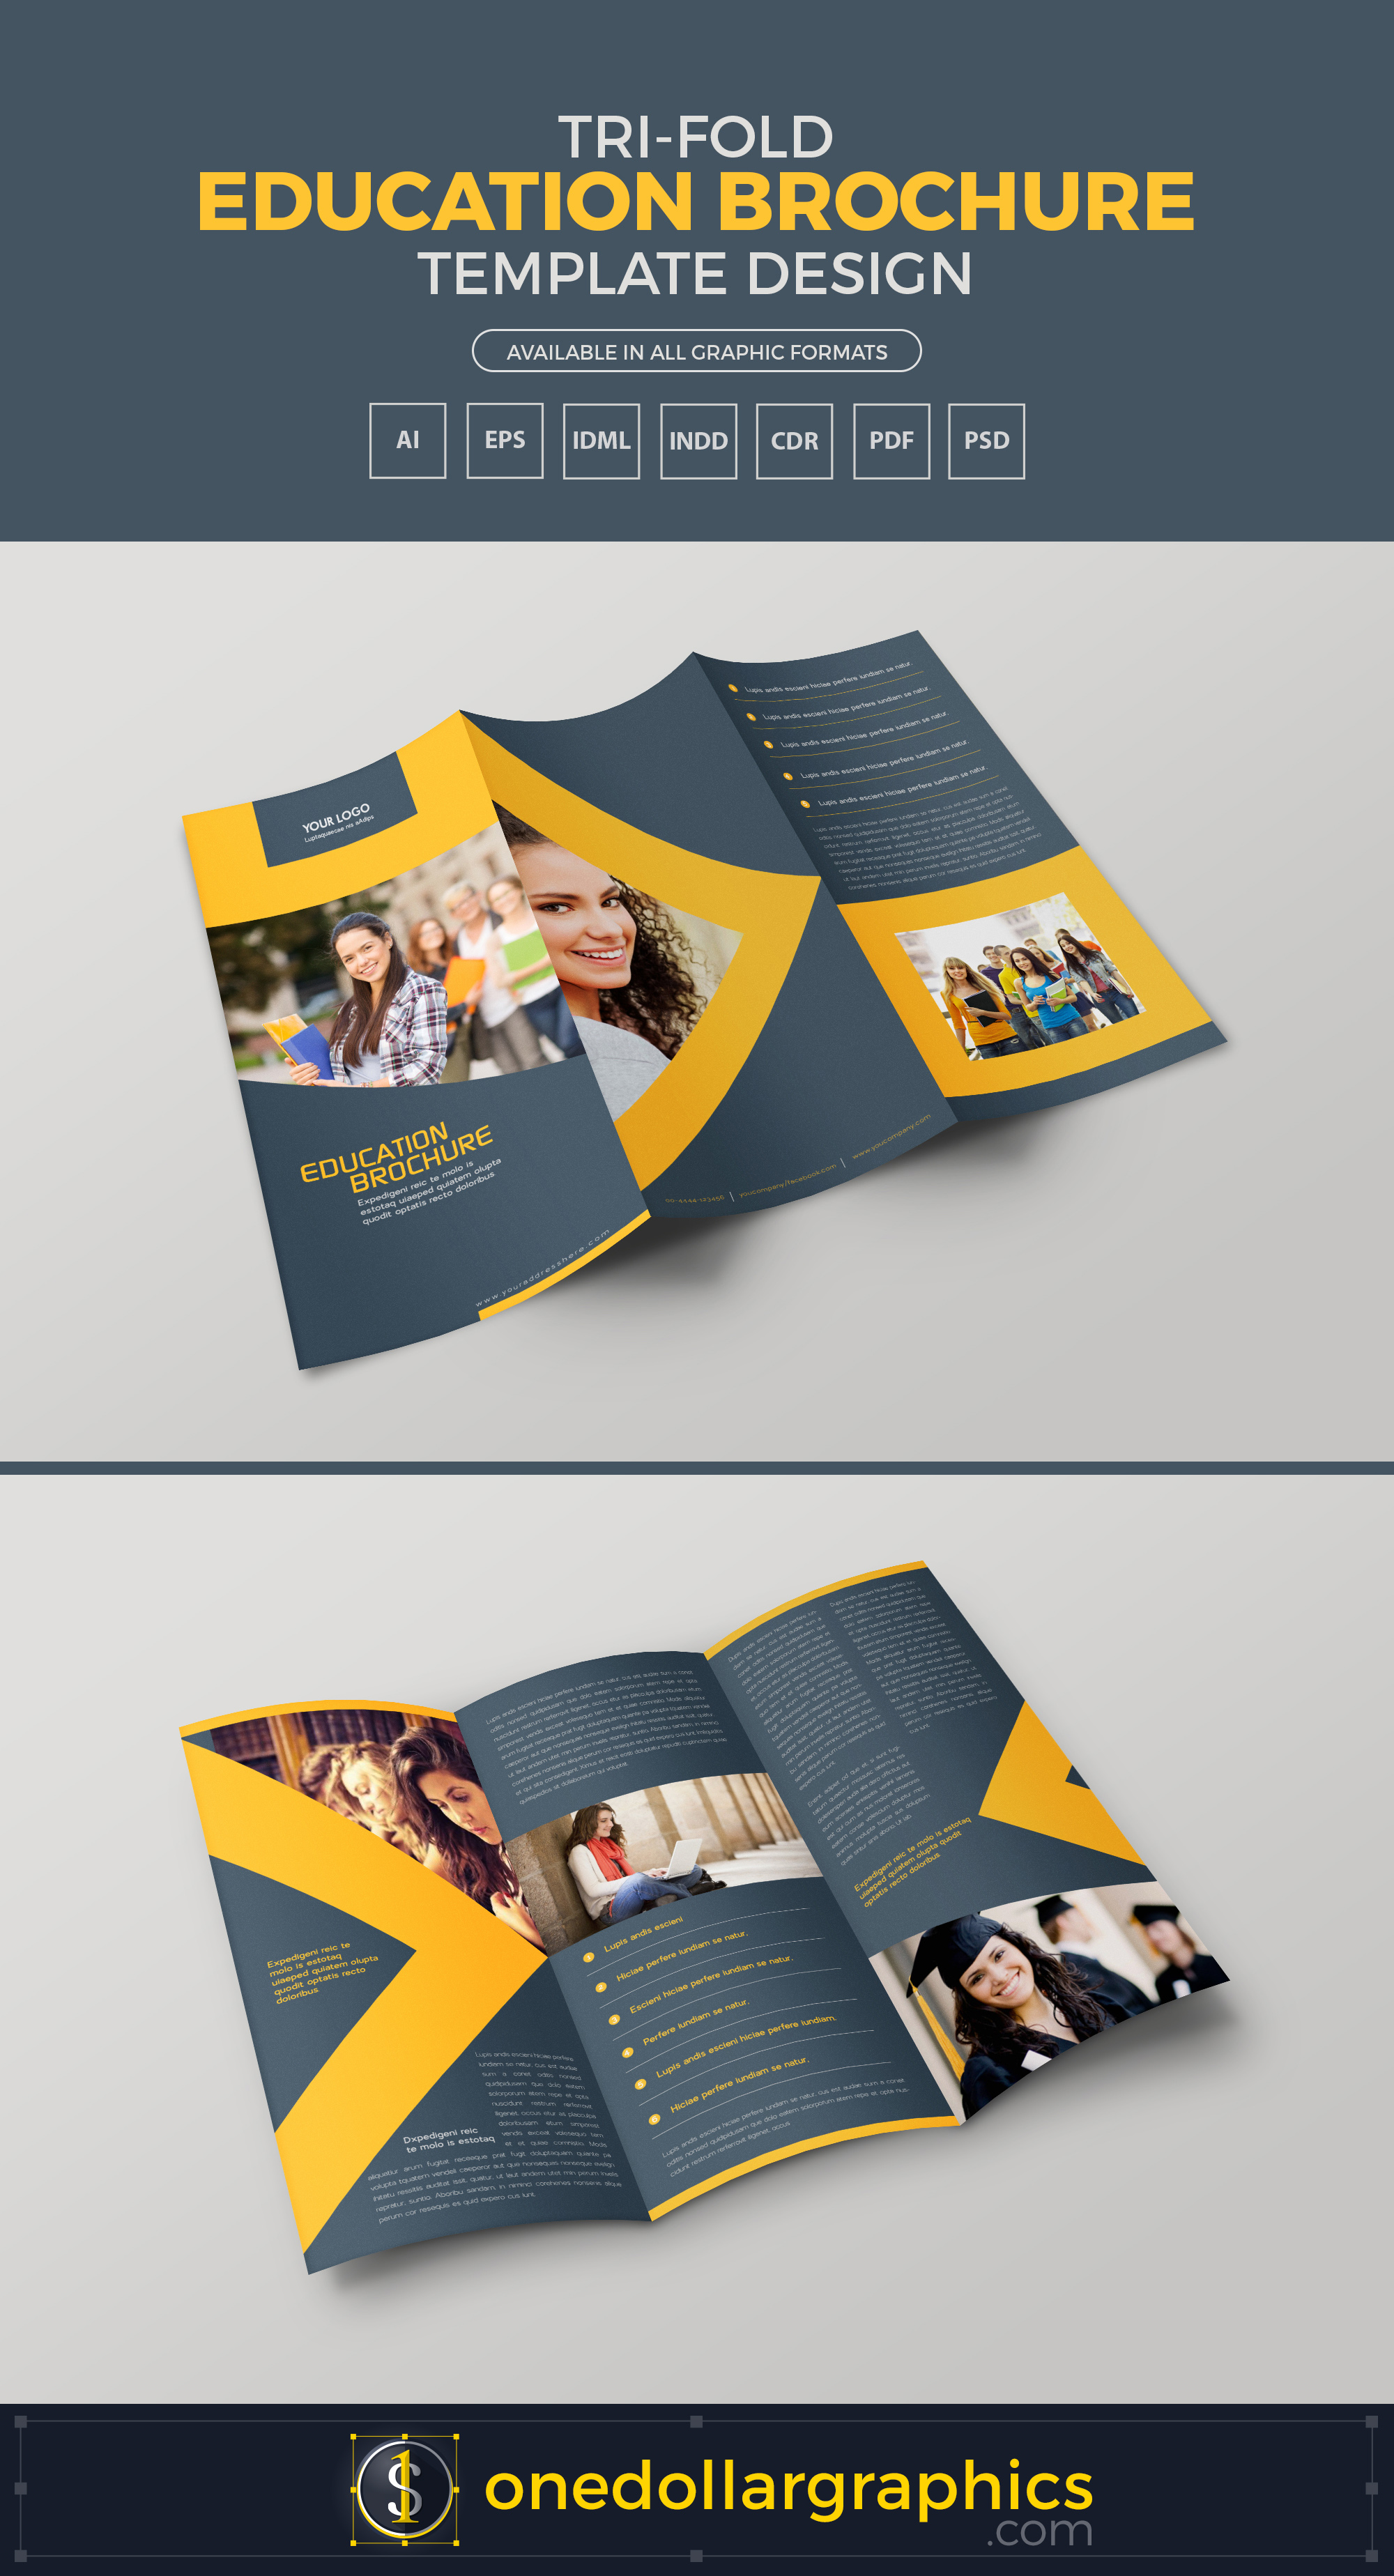 ai brochure templates - tri fold education brochure template design in ai eps